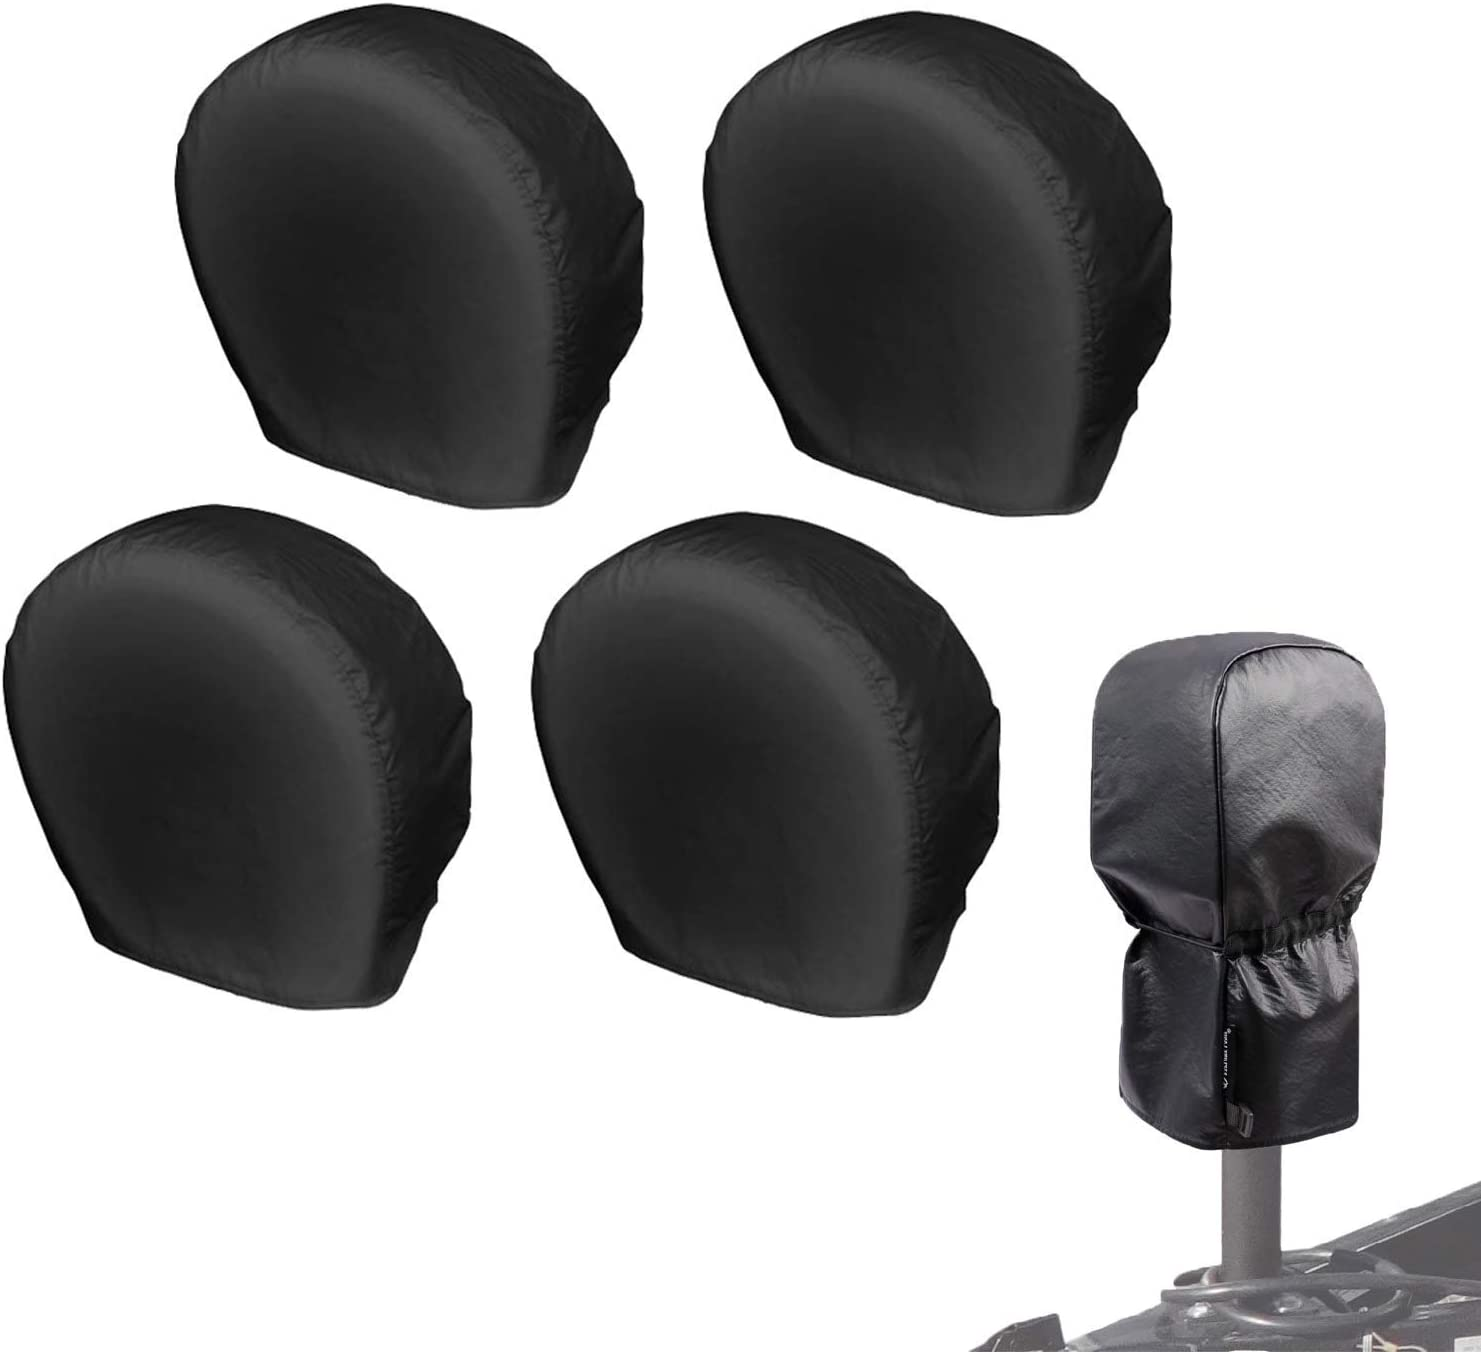 Universal fits Tire Diameter 26-28.75 inches, Black Explore Land Electric Tongue Jack Cover Bundle with Tire Covers 4 Pack